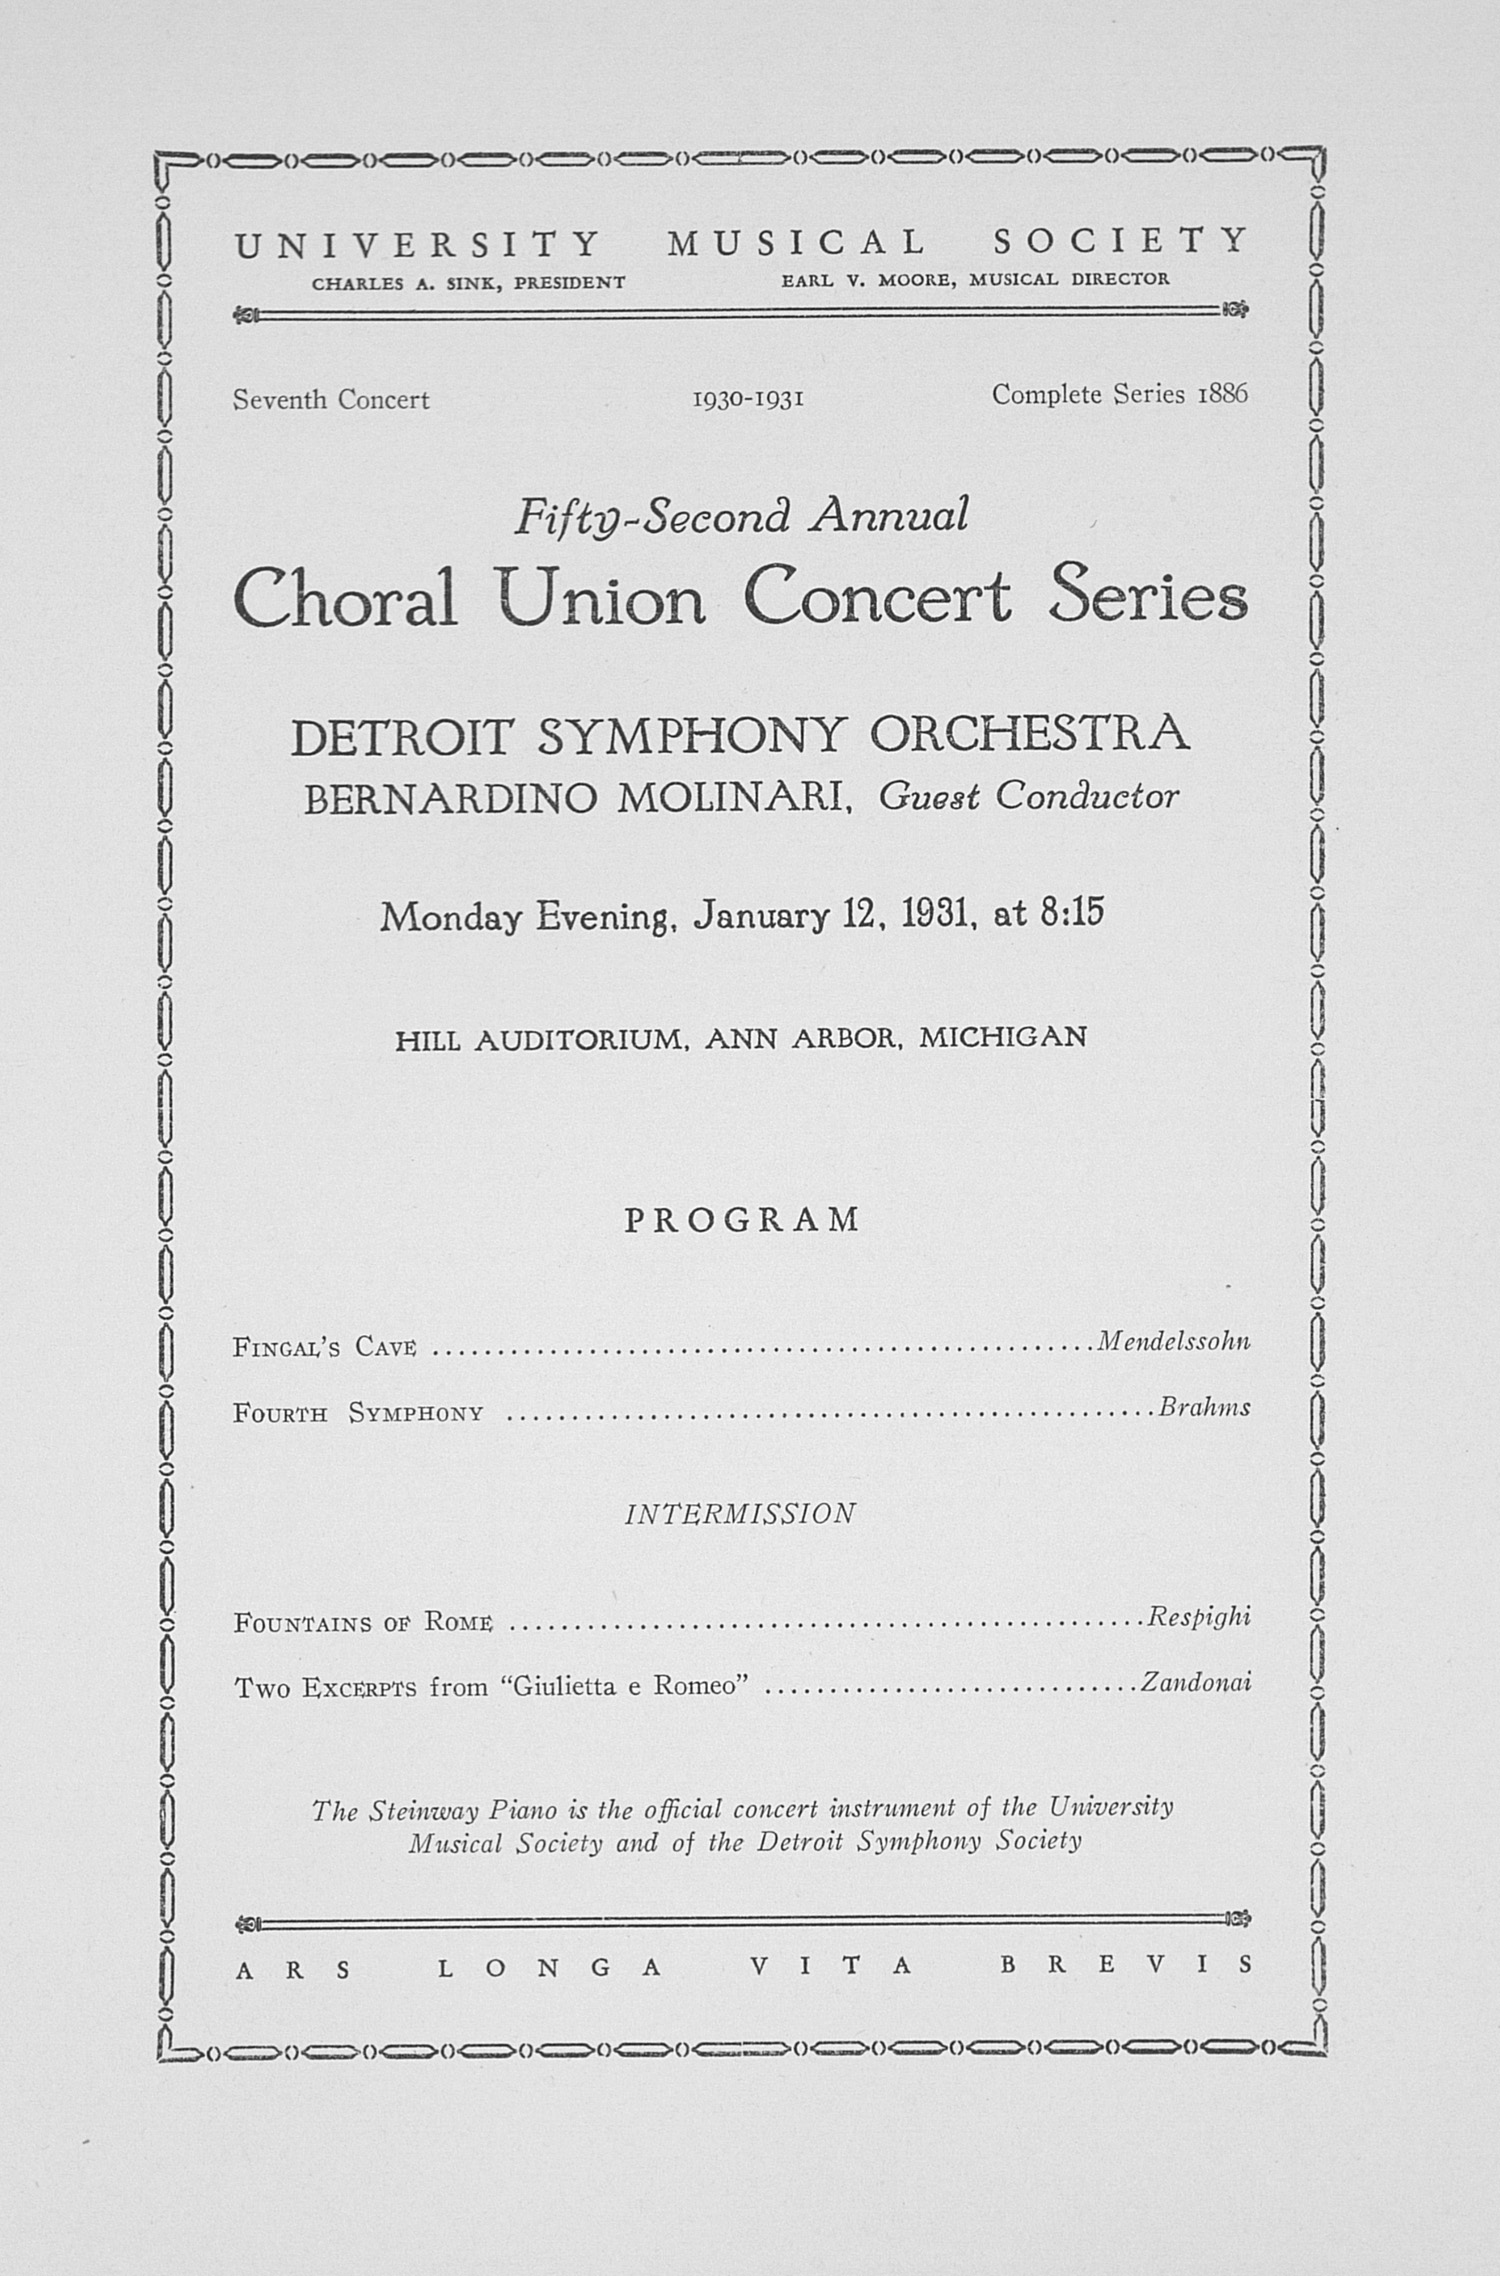 UMS Concert Program, January 12, 1931: Fifty-second Annual Choral Union Concert Series -- Detroit Symphony Orchestra image